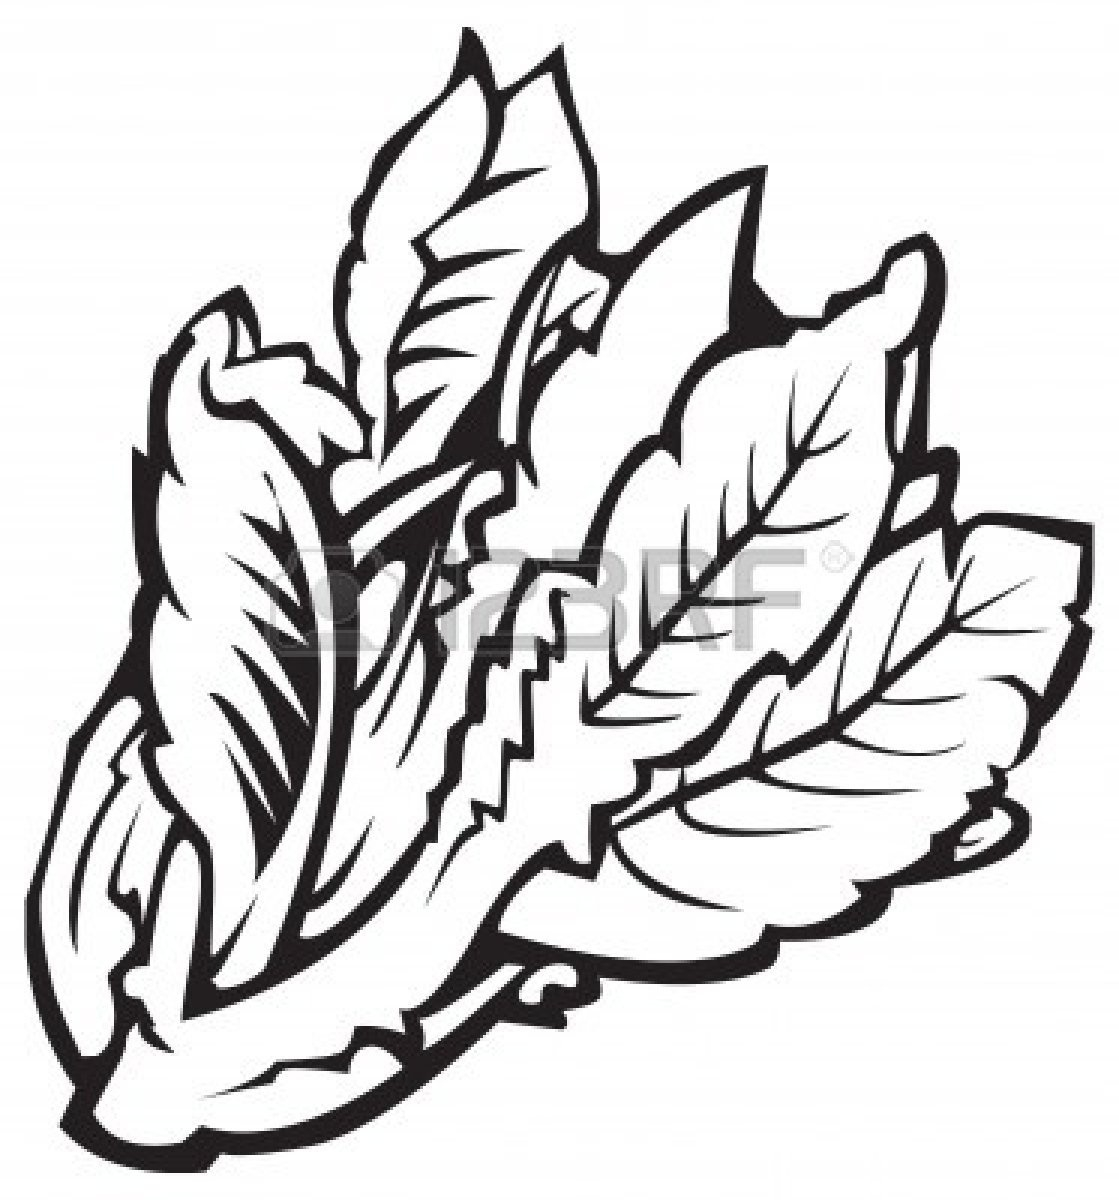 Spinach clipart black and white. Letters example throughout